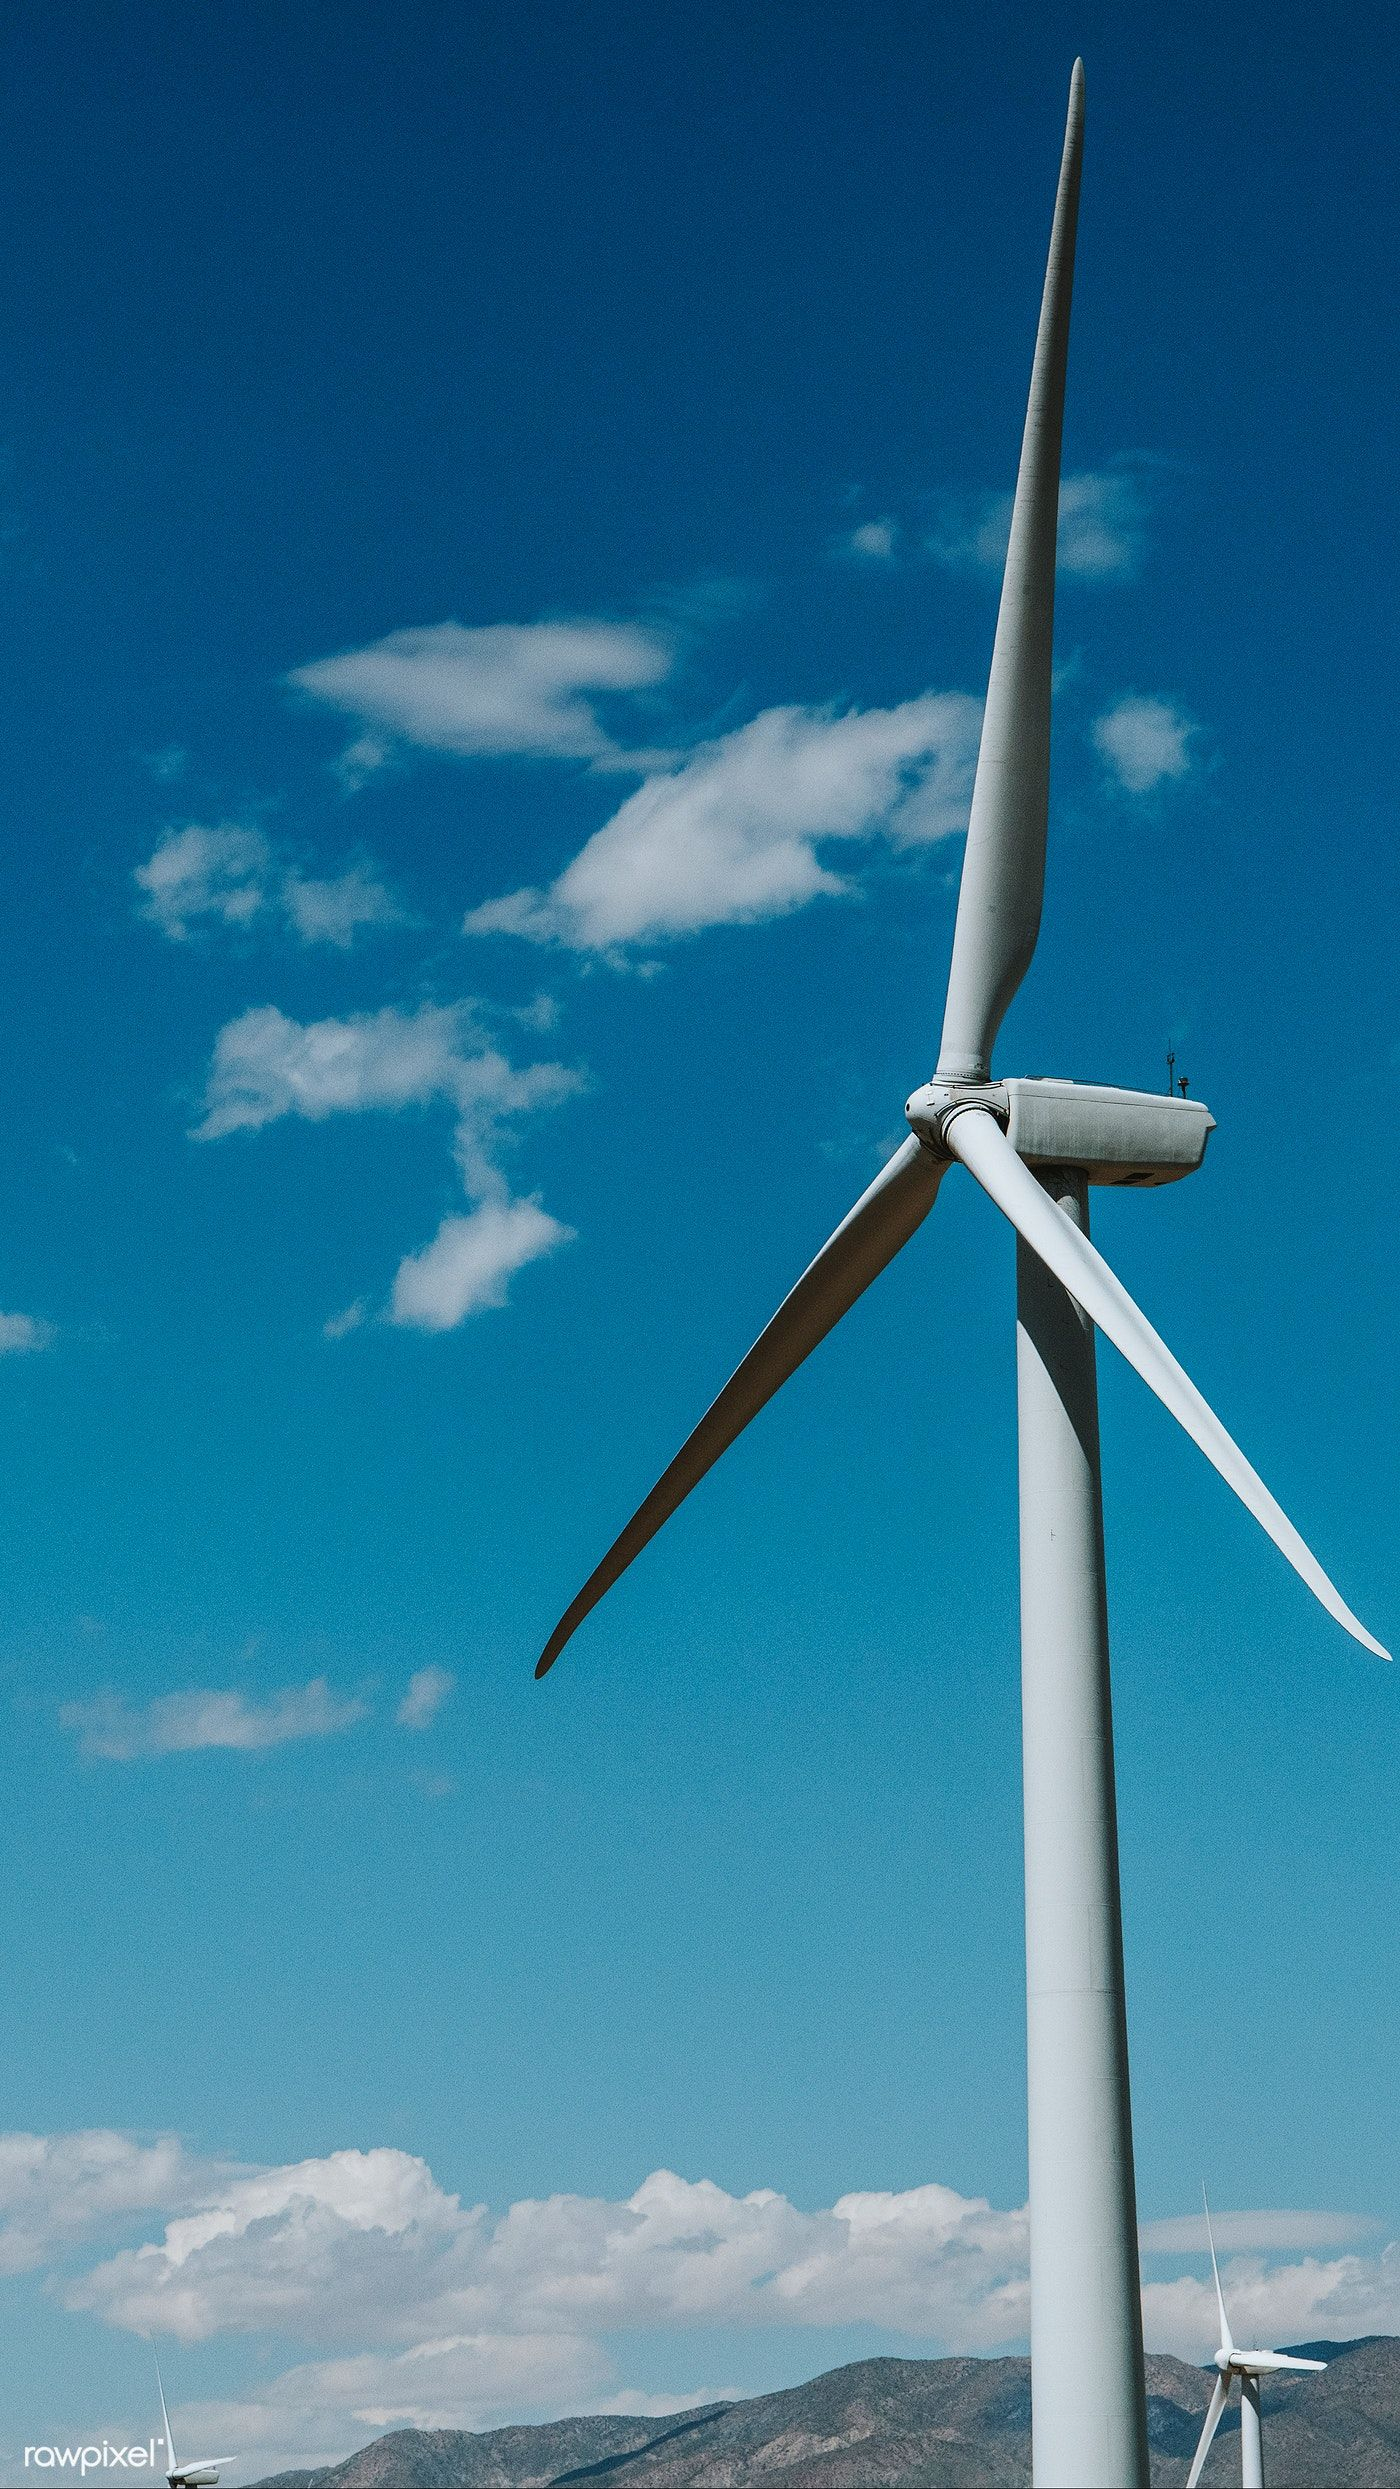 Wind Turbine With A Blue Sky Free Image By Rawpixel Com 4k Iphone And Mobile Phone Wallpaper Teddy Home Wind Turbine Wind Turbine Building A Wind Turbine